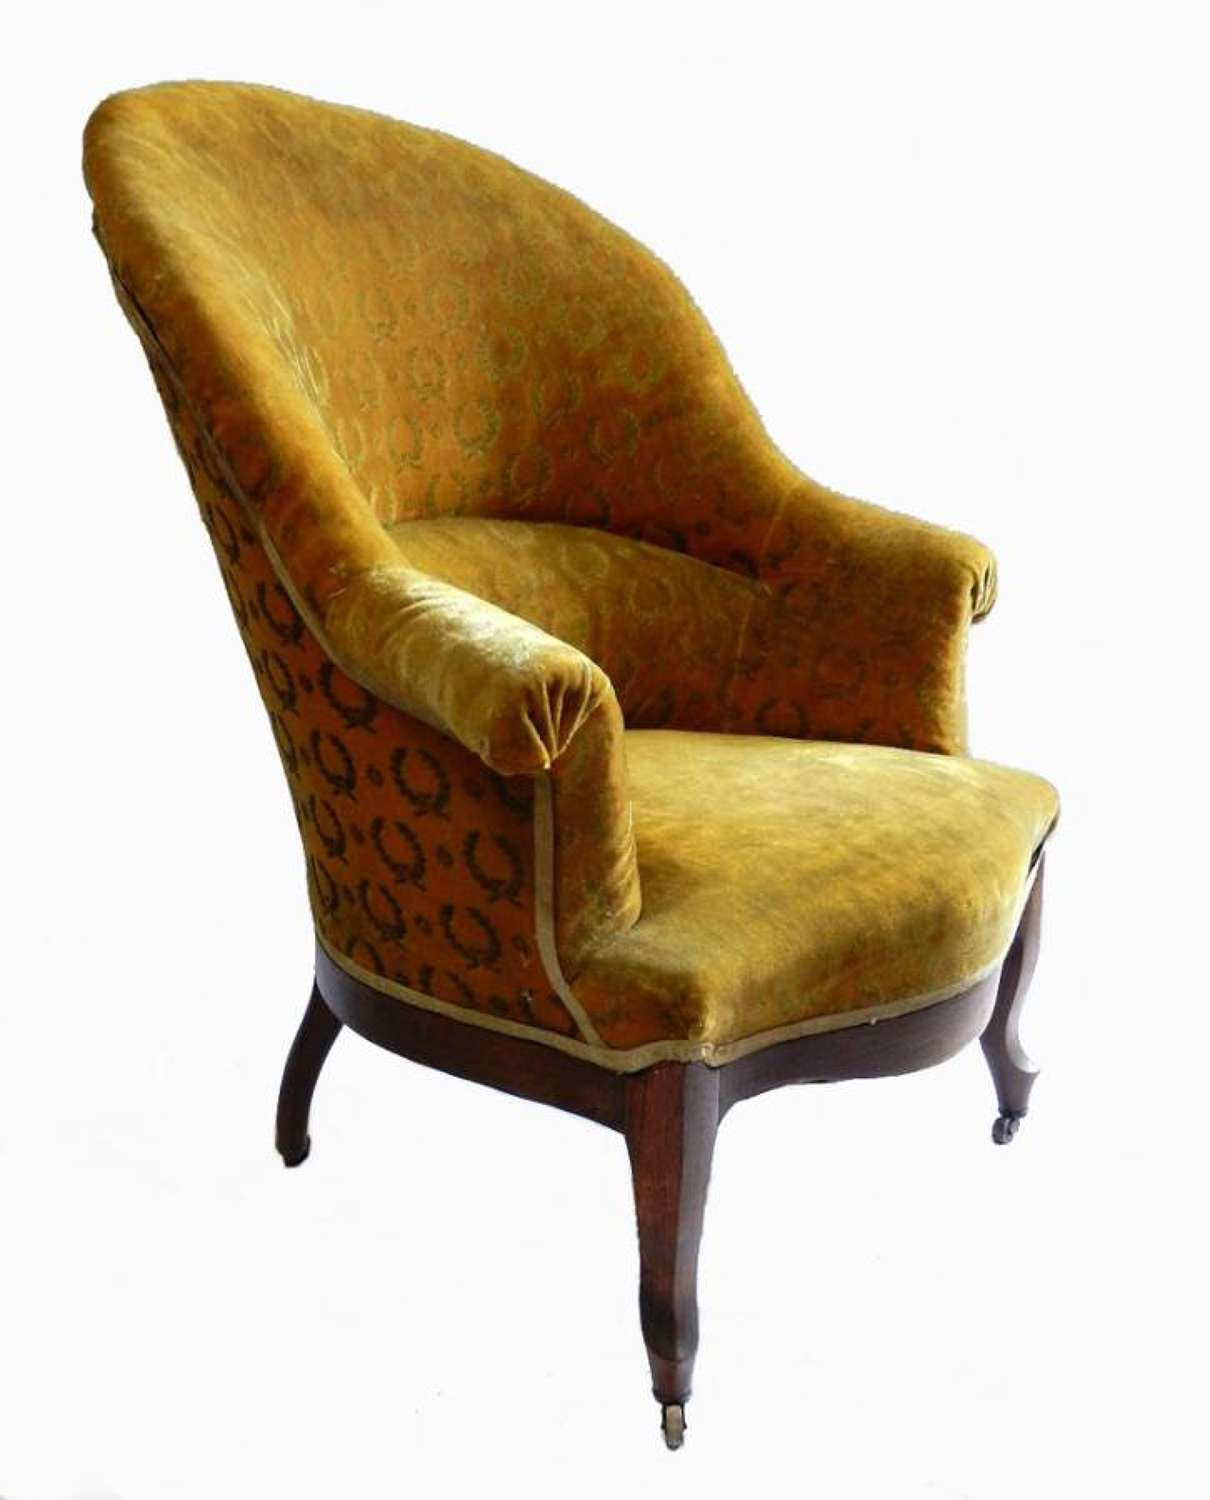 French Empire Louis Philipe Slipper Chair Armchair to recover